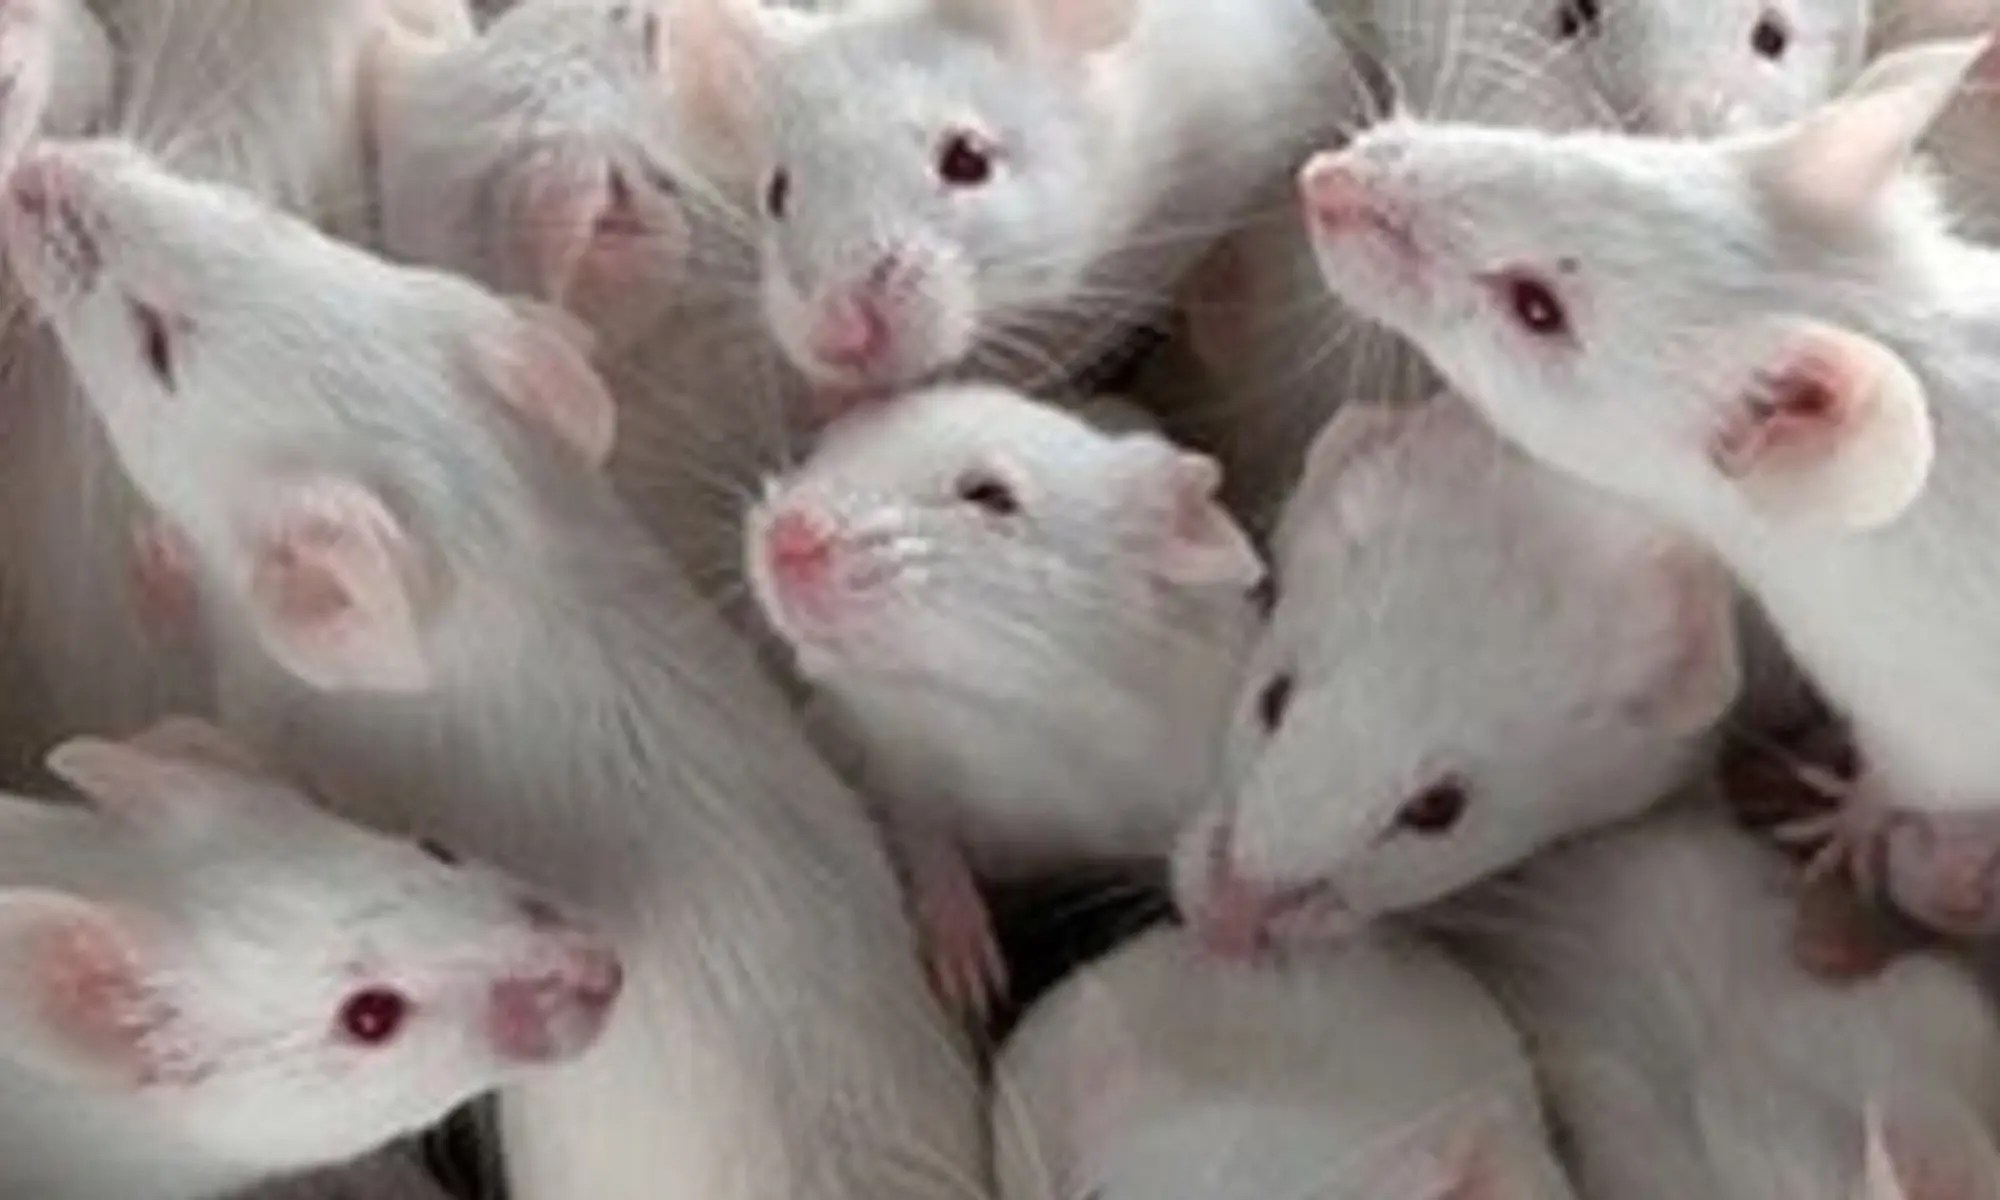 Transplacental effects of diethylstilbestrol in mice